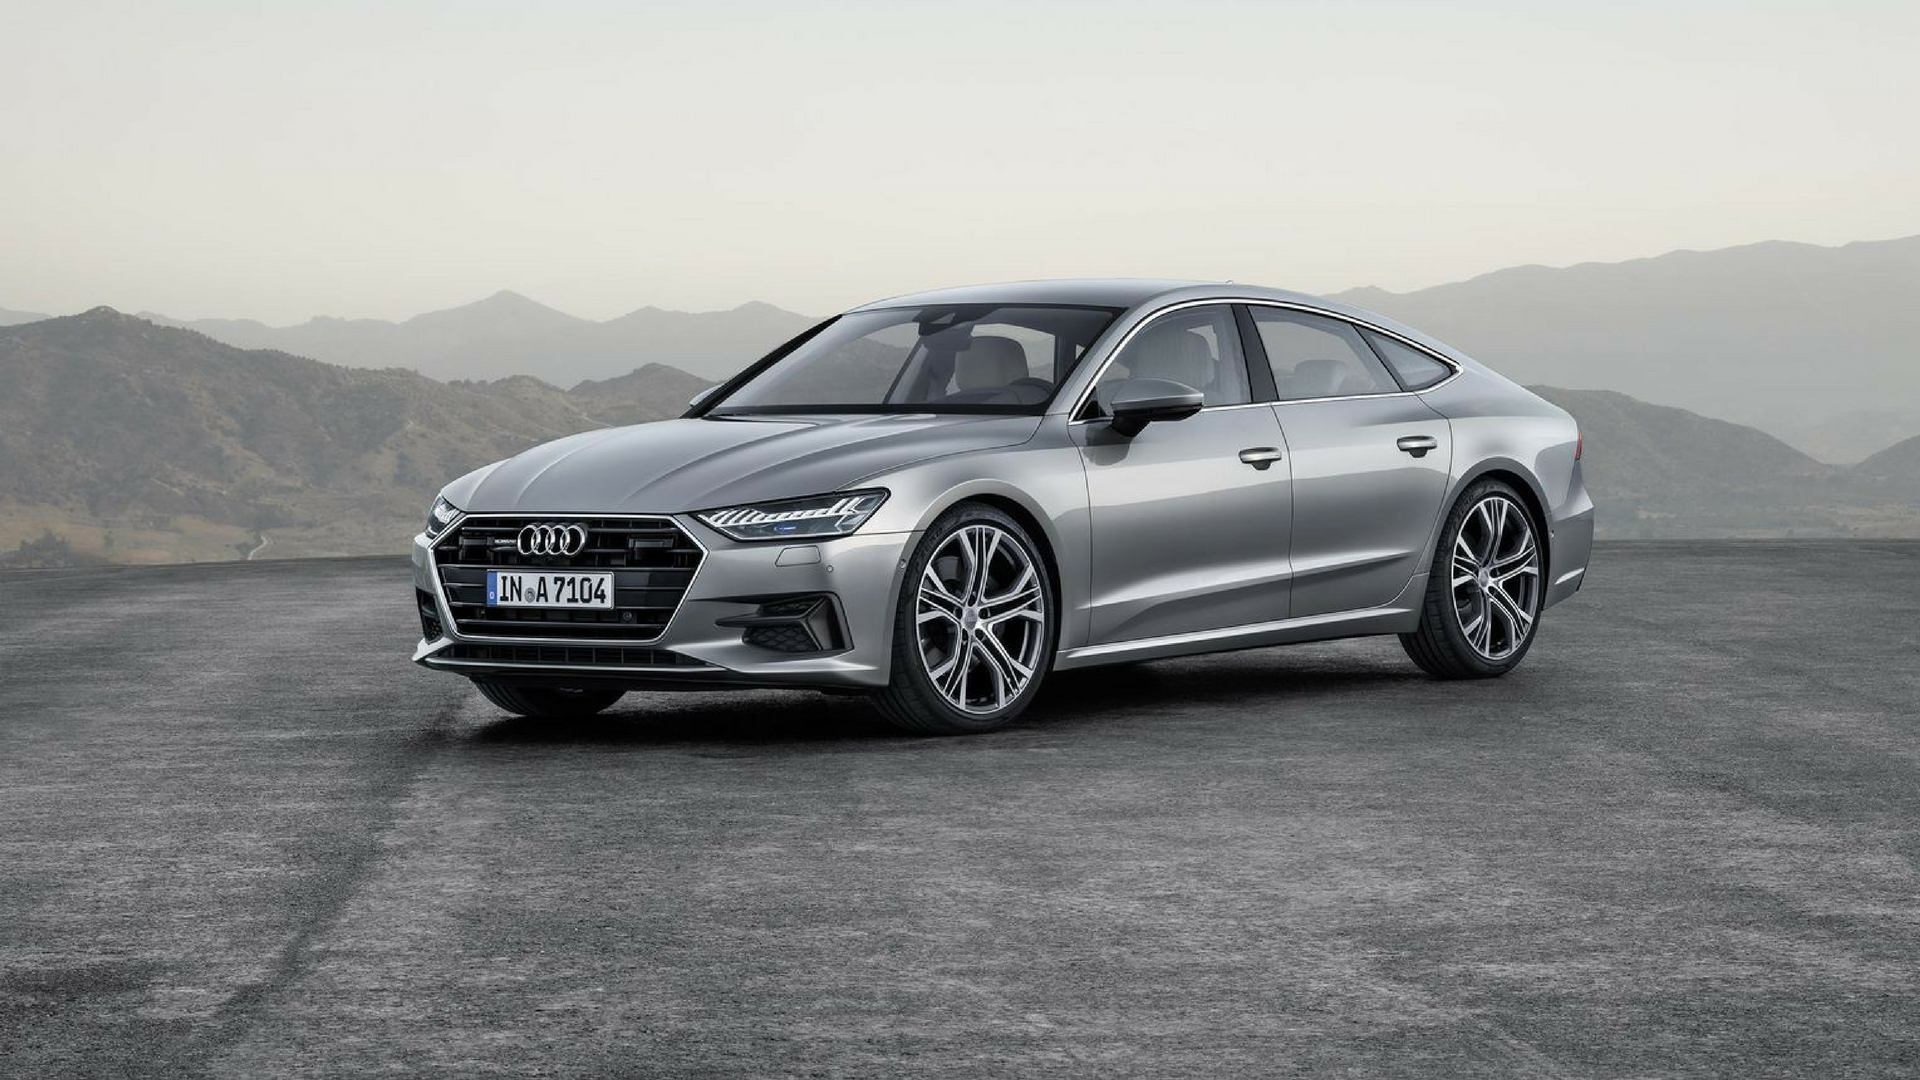 62 The Best 2019 All Audi A7 Price And Review